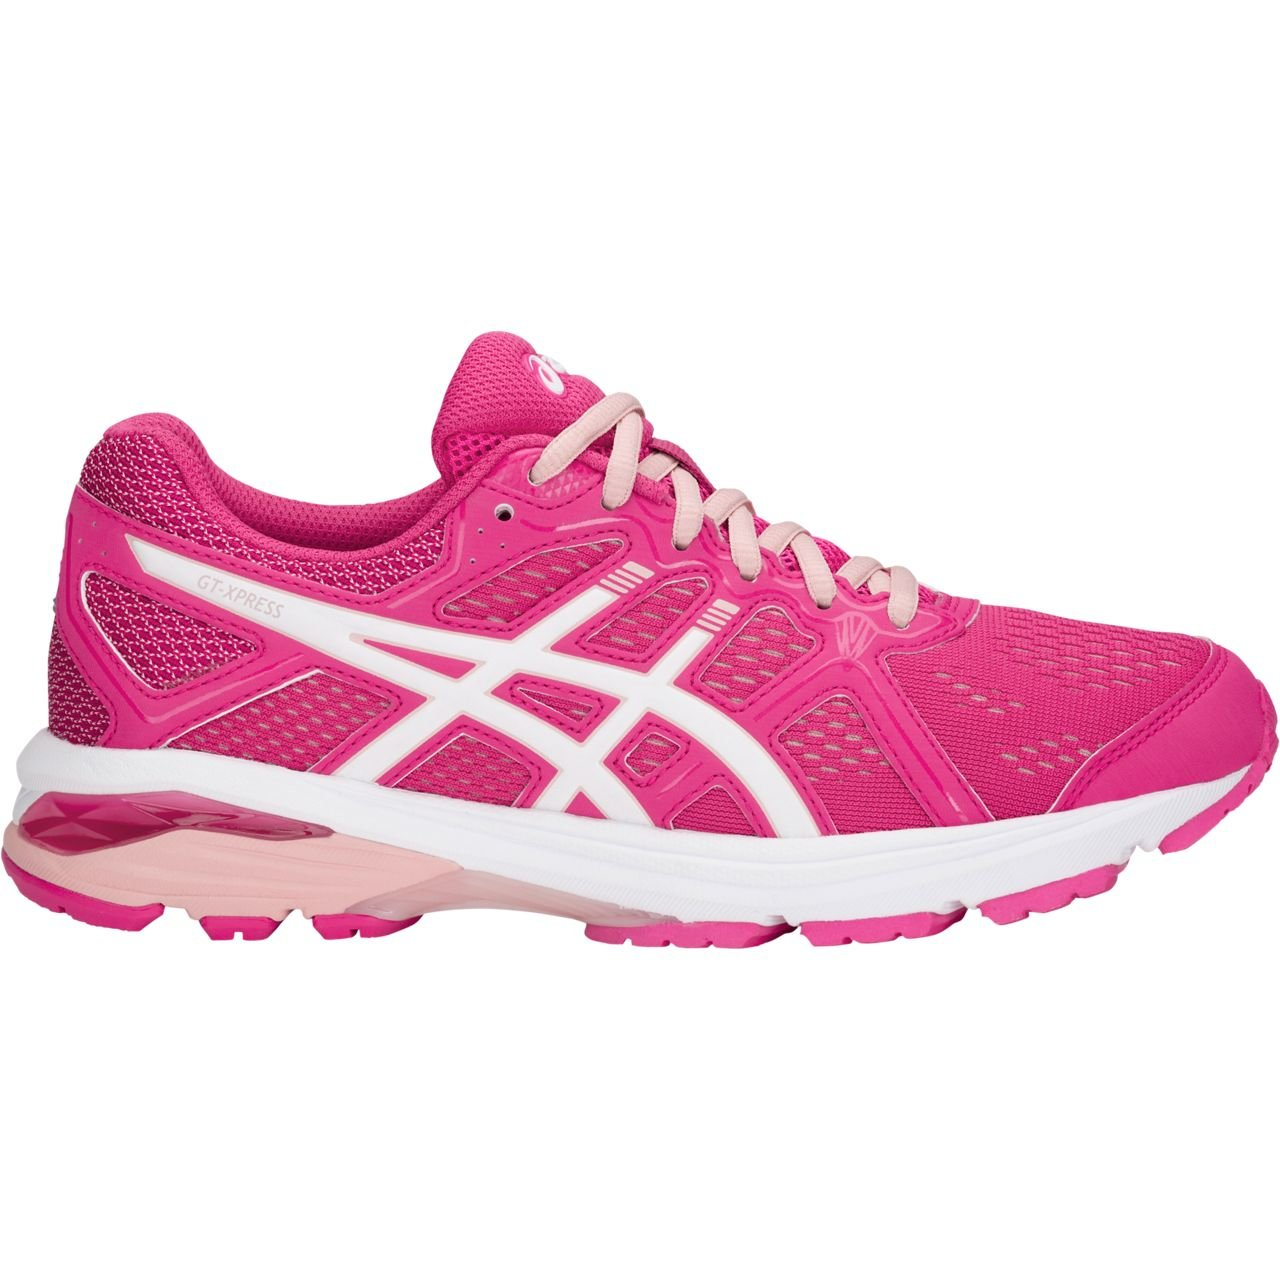 ASICS Women's GT-Xpress Running Shoe B07DNGG637 11 B(M) US|Fuschia Purple/White